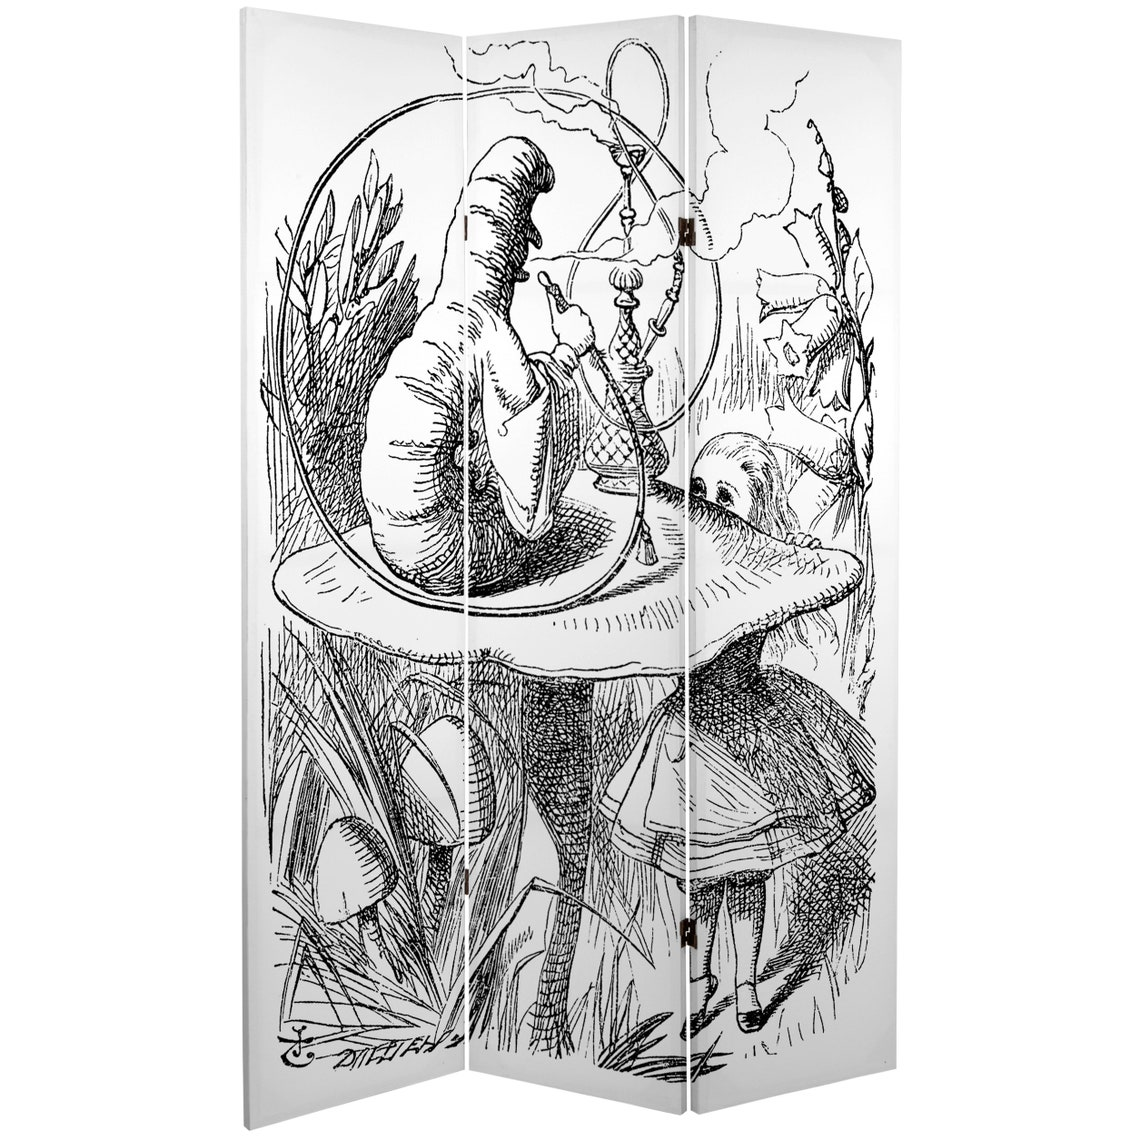 6 ft. Tall Double Sided Alice in Wonderland Canvas Room Divider